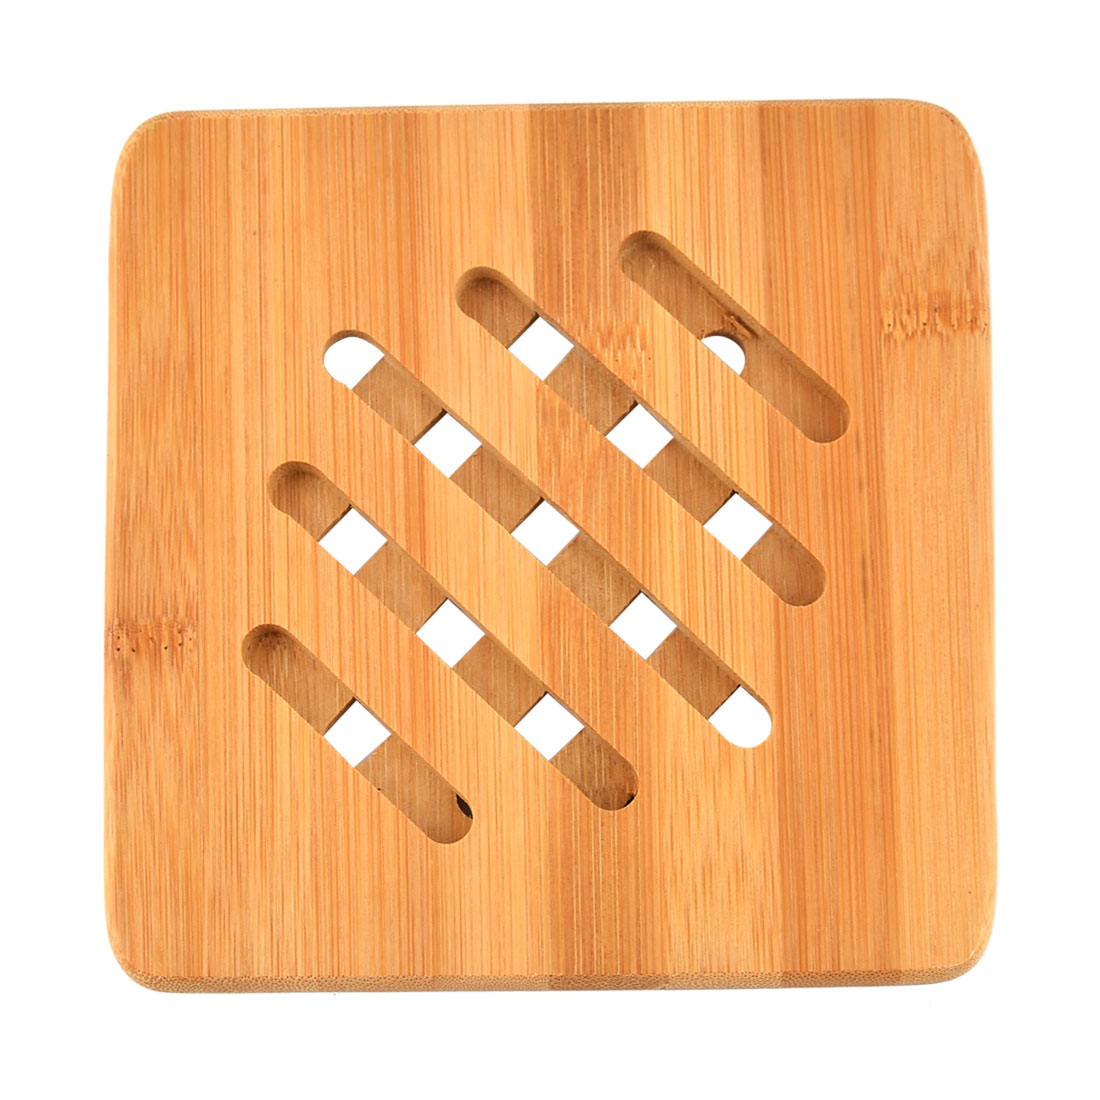 Bamboo Square Shape Heat Resistant Kitchen Table Pot Cup Mat Cushion